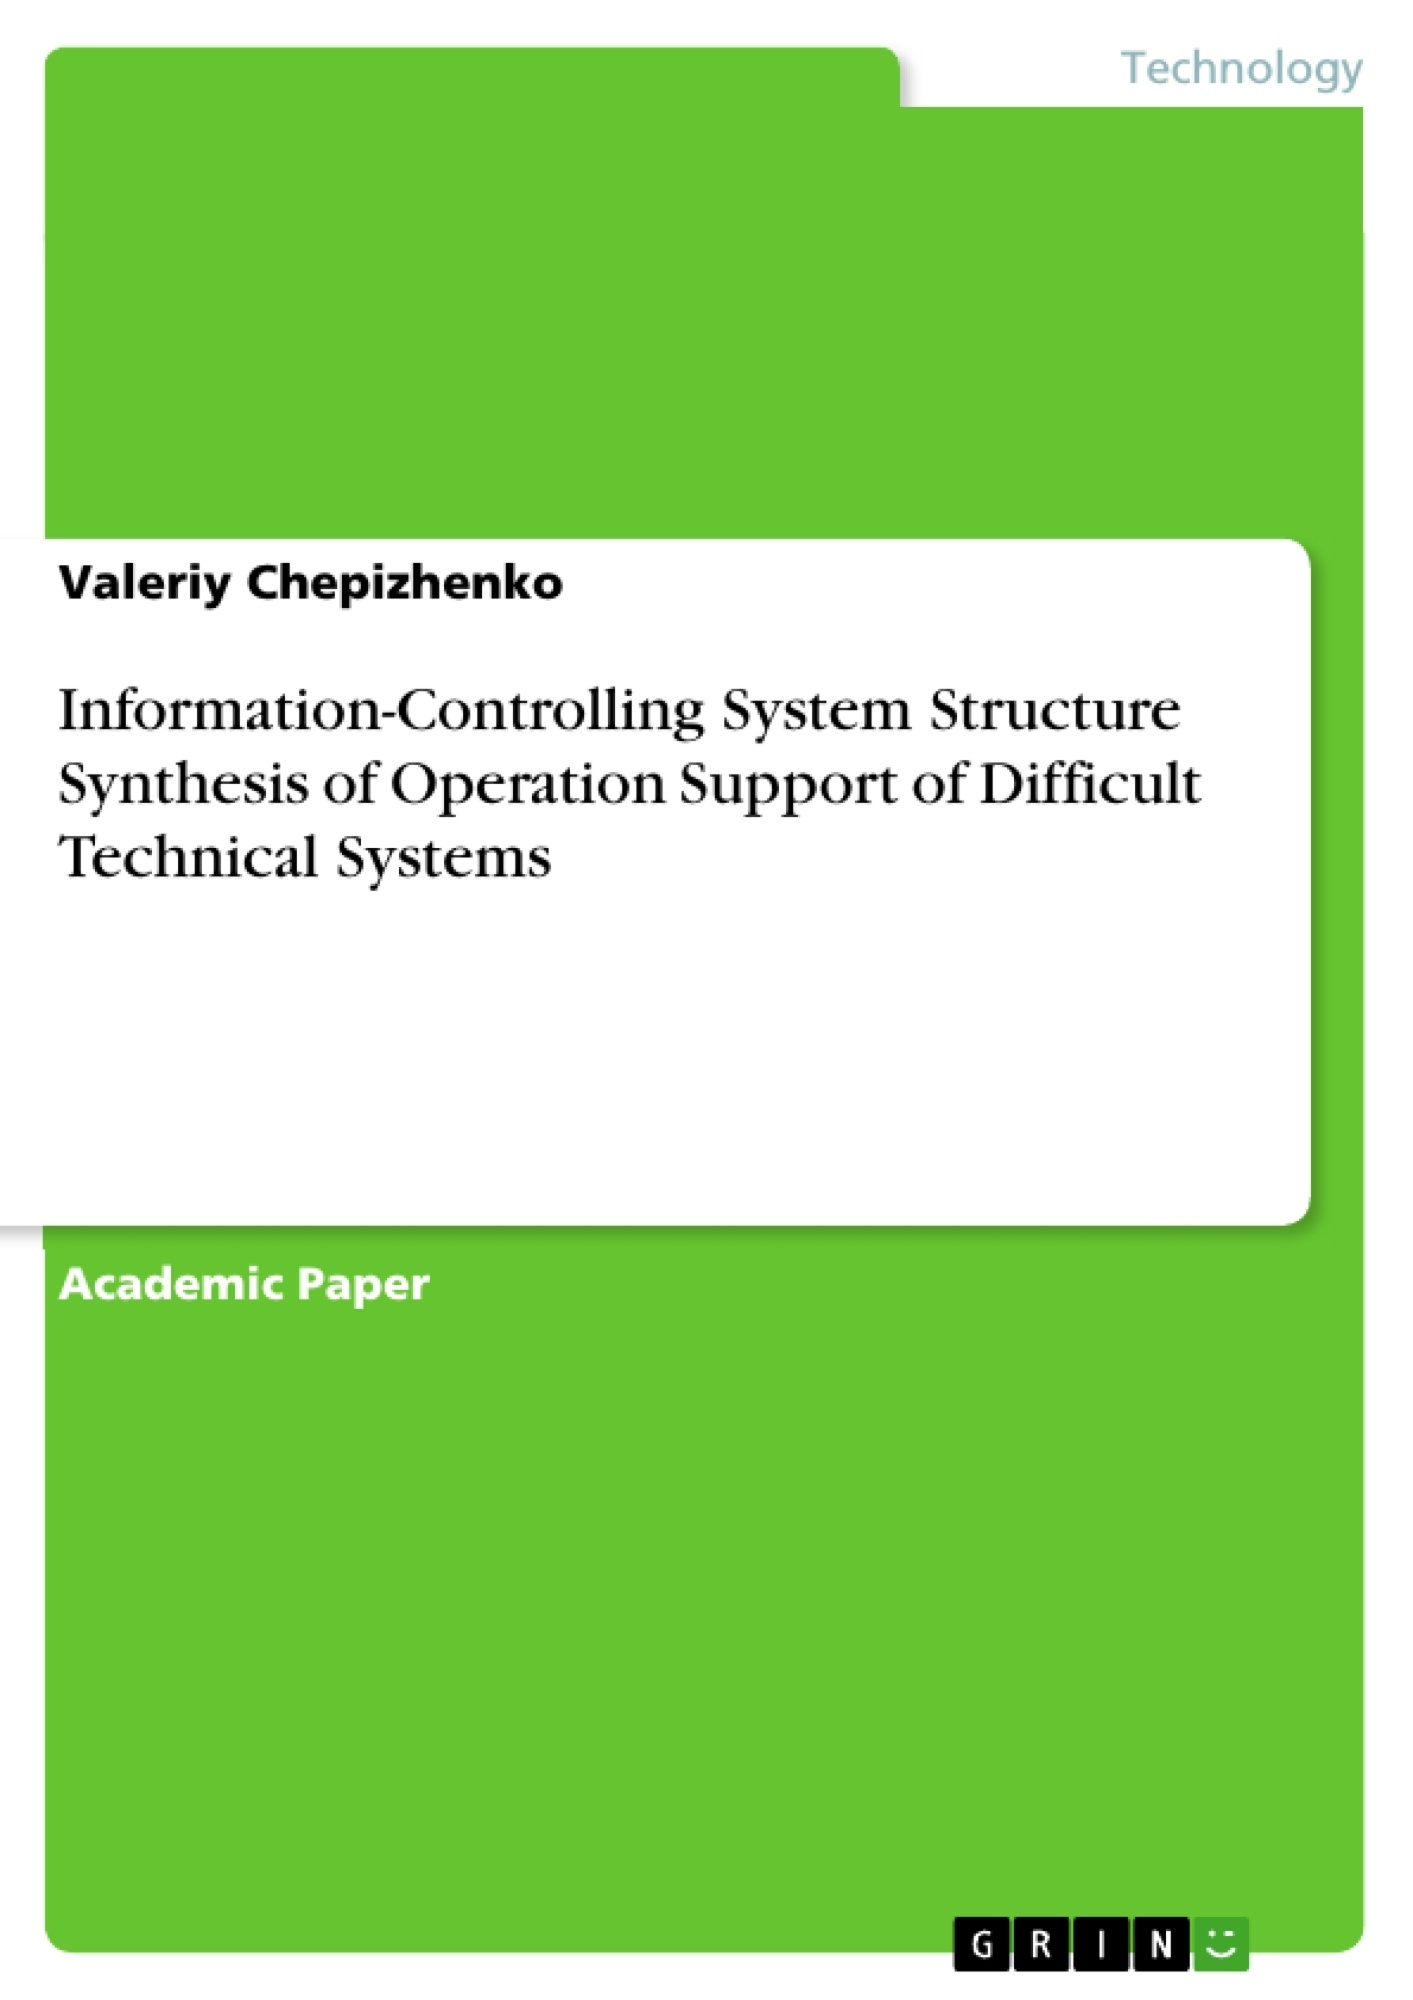 Title: Information-Controlling System Structure Synthesis of Operation Support of Difficult Technical Systems